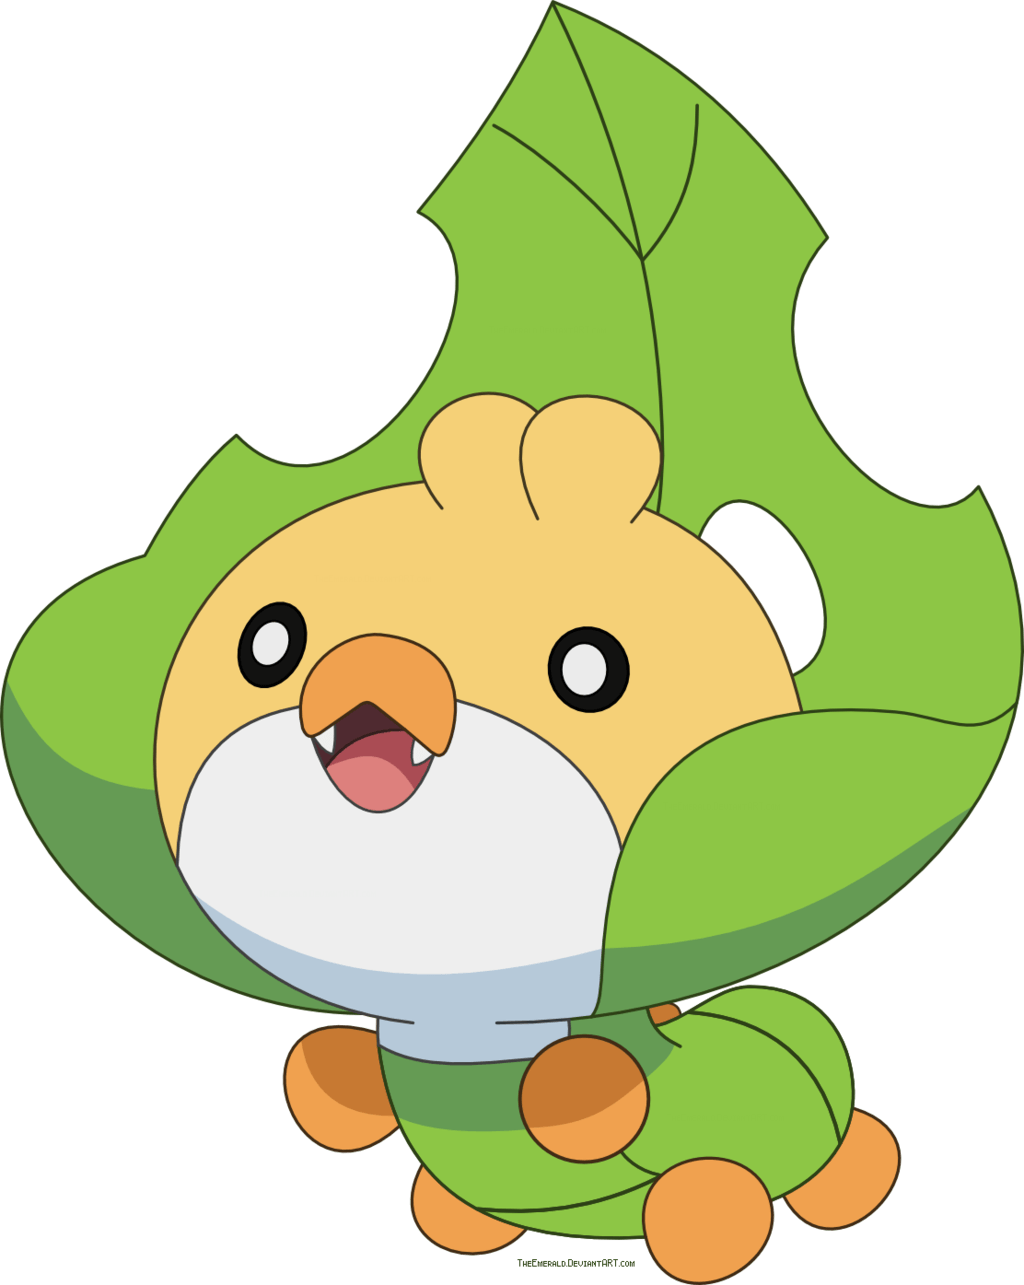 Free Sewaddle Pokemon vector by Emerald-Stock on DeviantArt